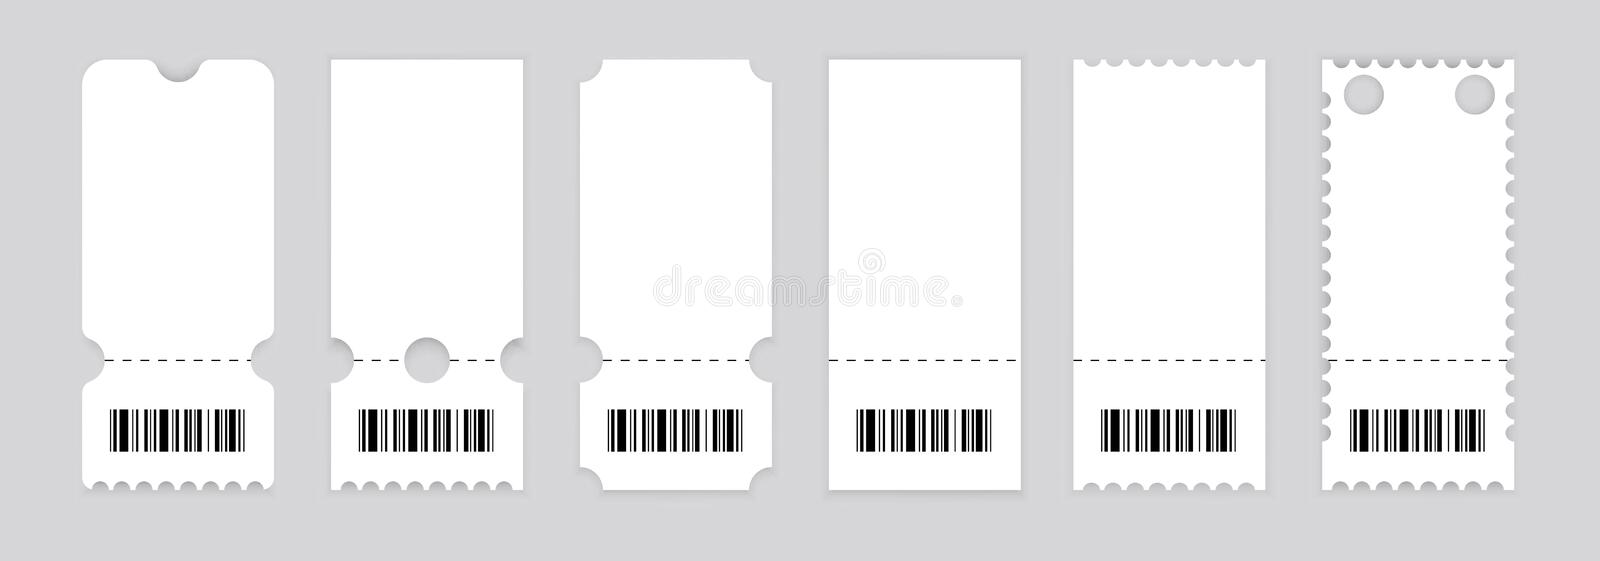 Realistic ticket design. Vector illustration.Symbol Coupon.Set of vintage grunge Collection Tickets. Template. royalty free illustration